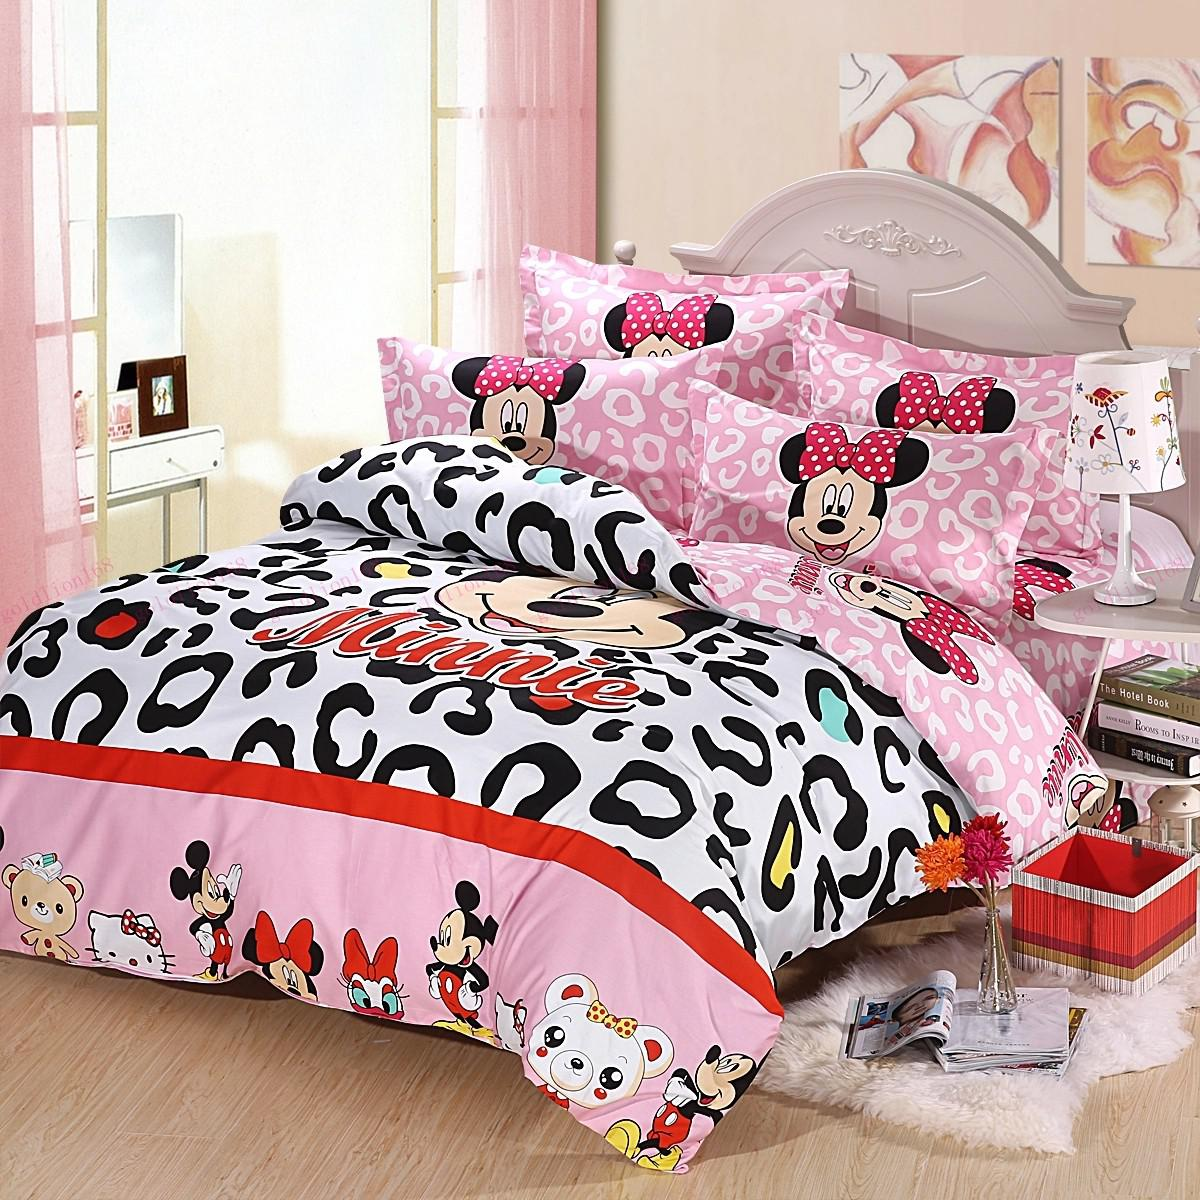 Pink Minnie Mouse Bedroom Decor Minnie Mouse Bedroom Set Mickey Minnie Mouse Bathroom Bathroom